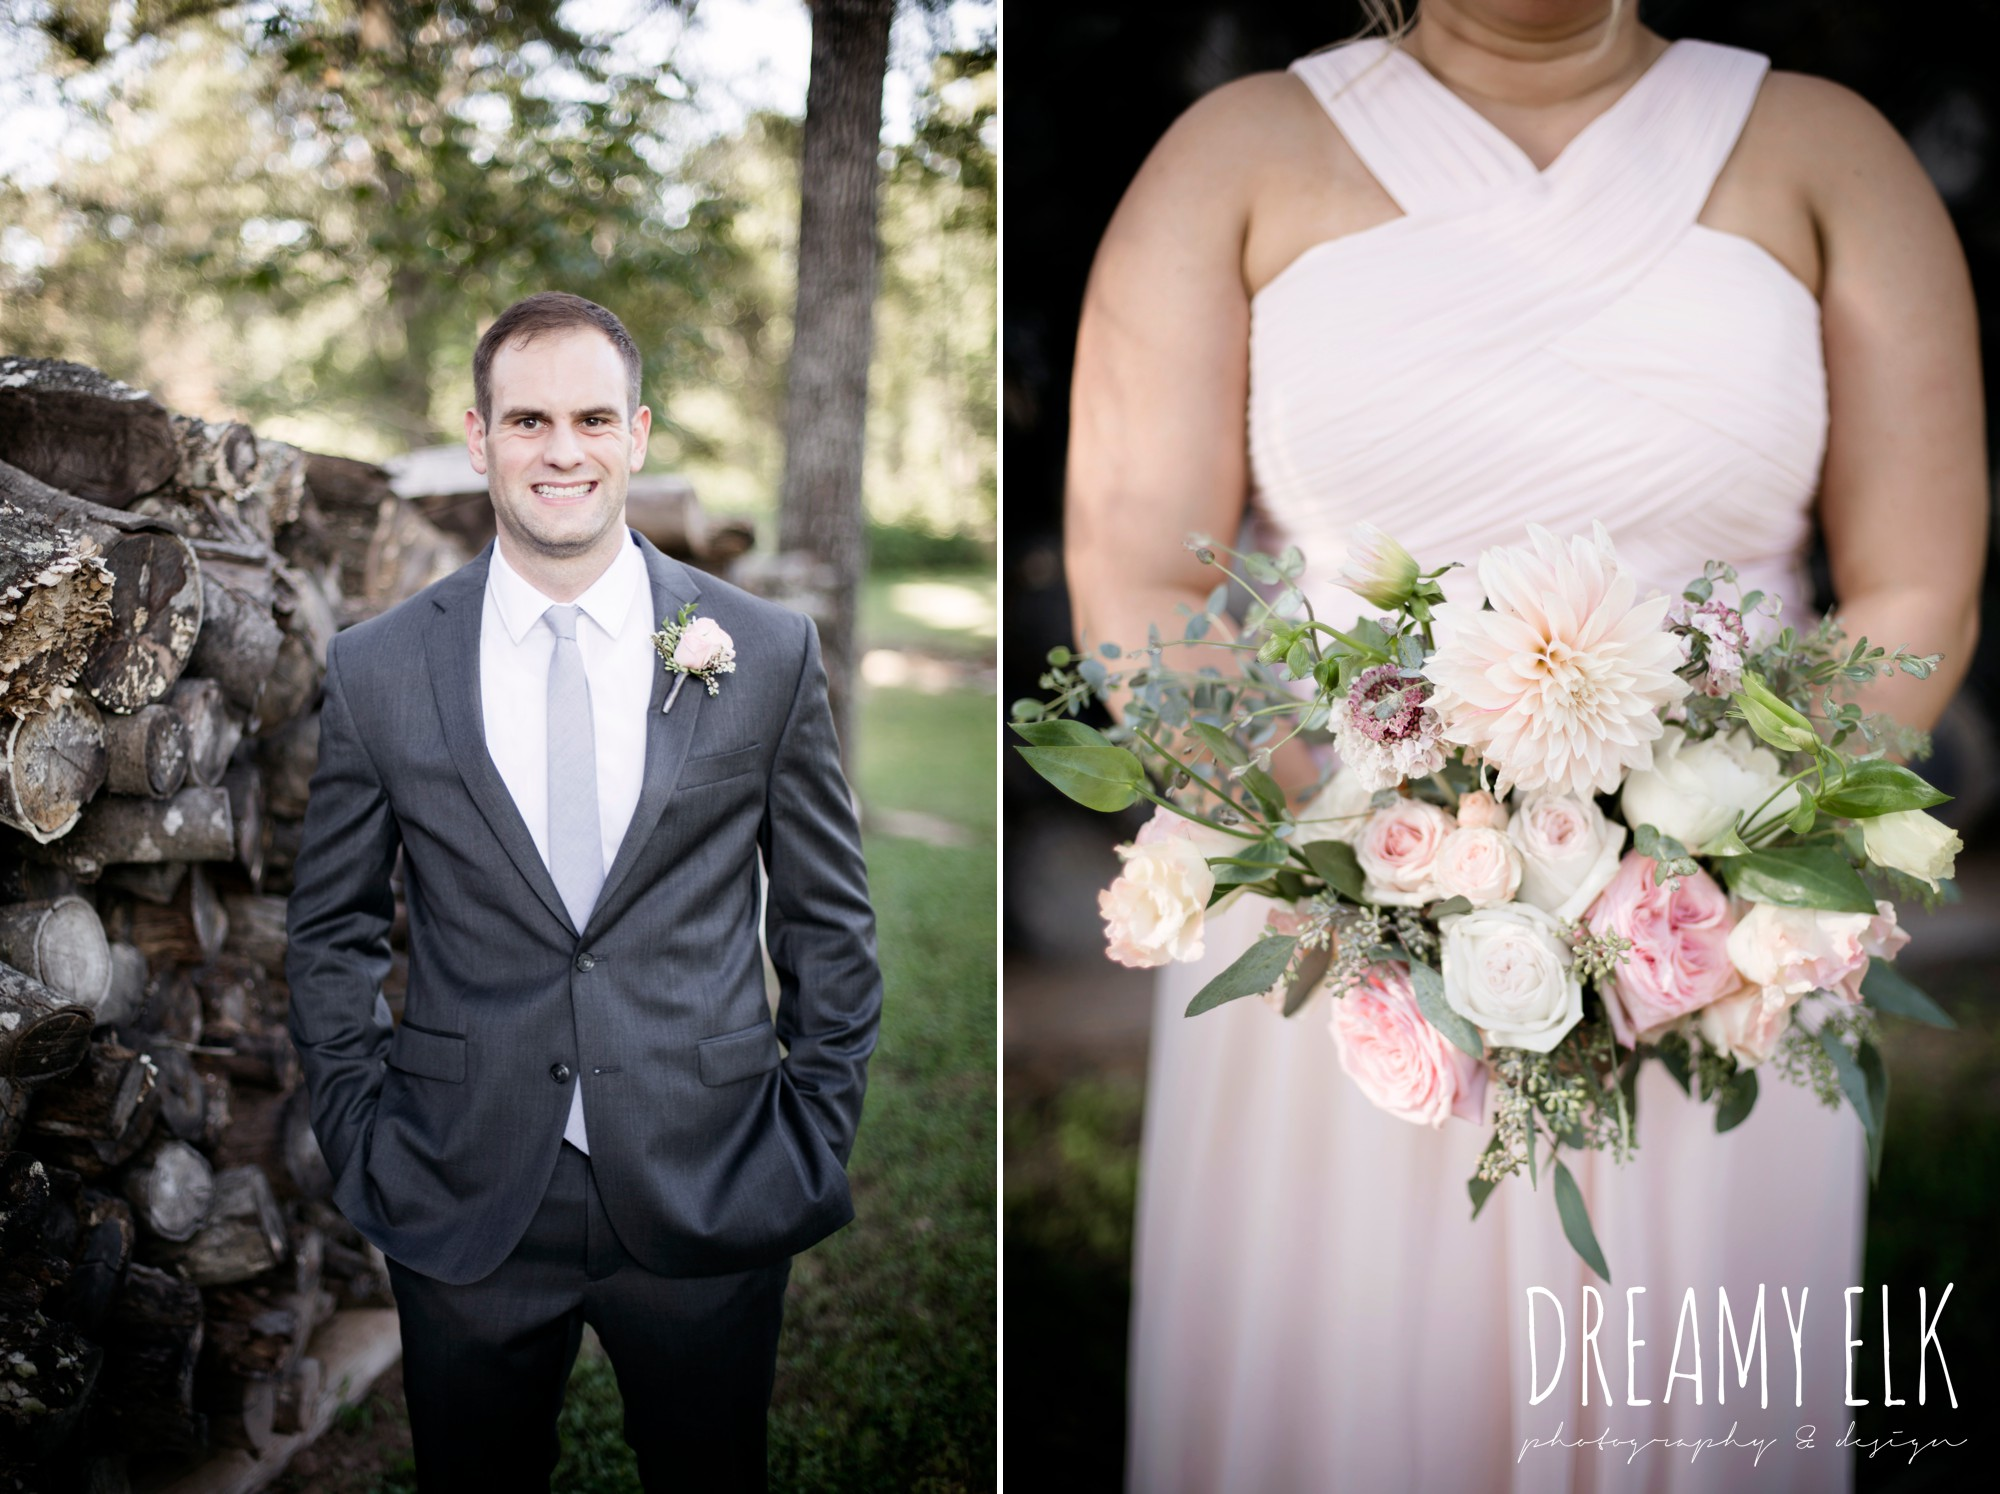 mix and match floor length blush bridesmaid dresses, groom, gray jos a bank suit, outdoor fall october wedding photo, blush and gray wedding, balmorhea weddings and events, dreamy elk photography and design, austin texas wedding photographer